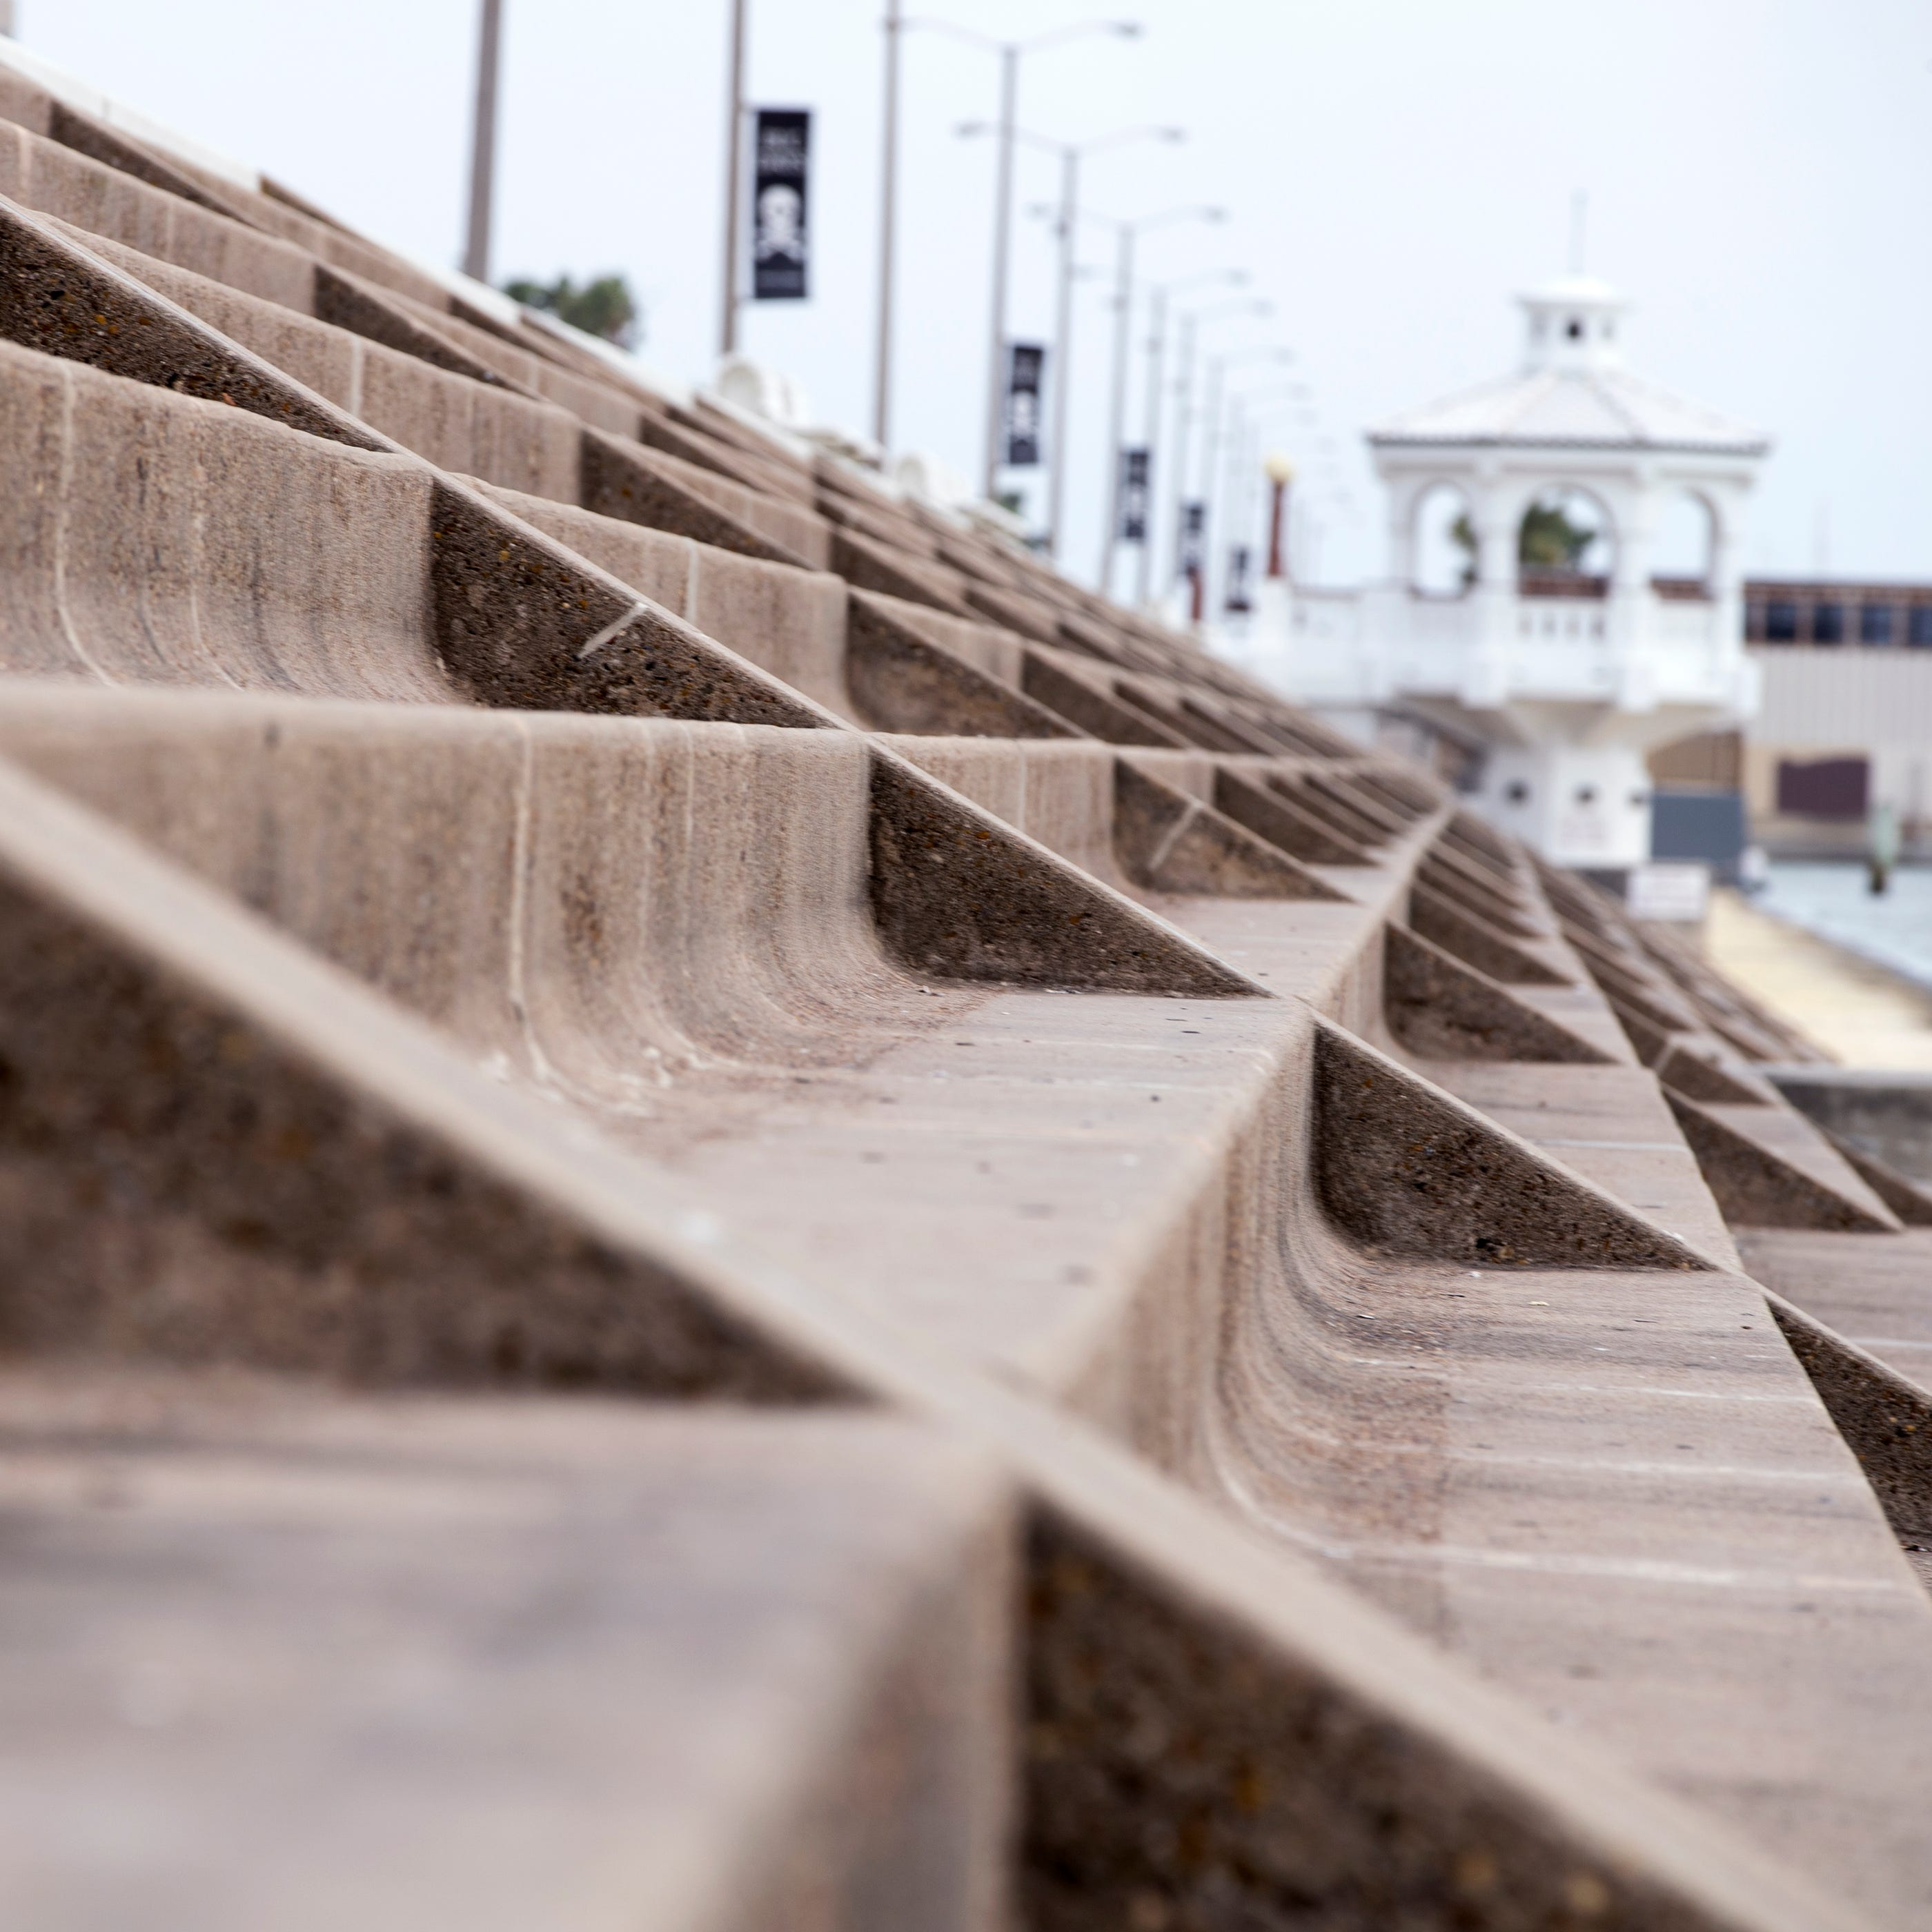 Use the Corpus Christi seawall fund for the seawall, period, and hope it's enough